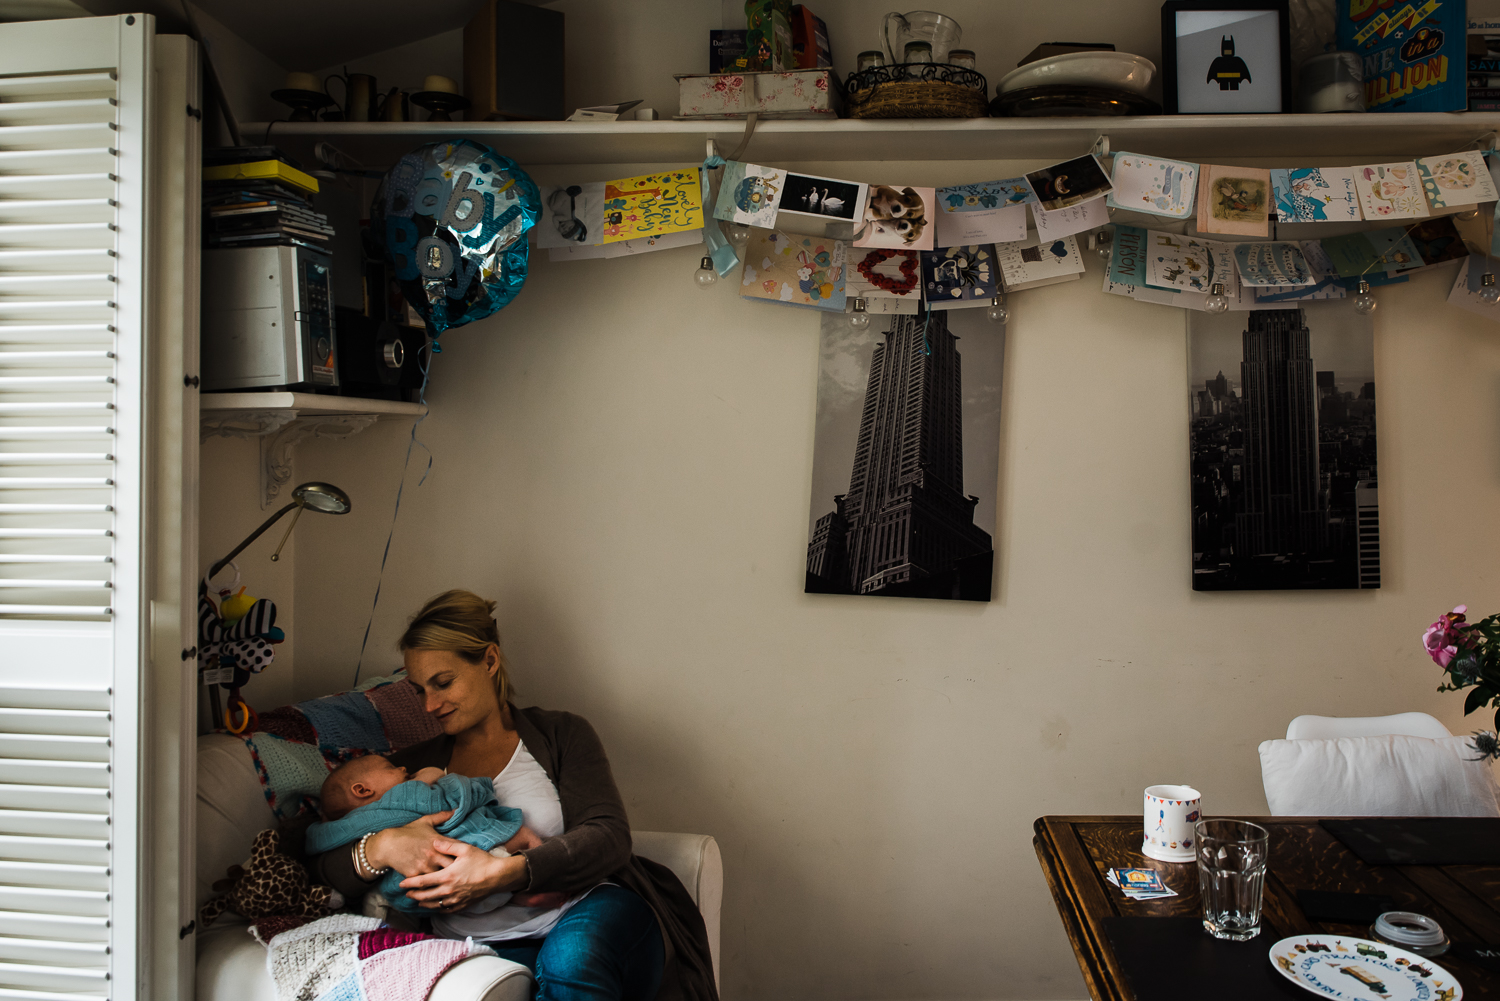 Quiet corner in kitchen cradling baby - in-home documentary shoot with Diana Hagues Photography